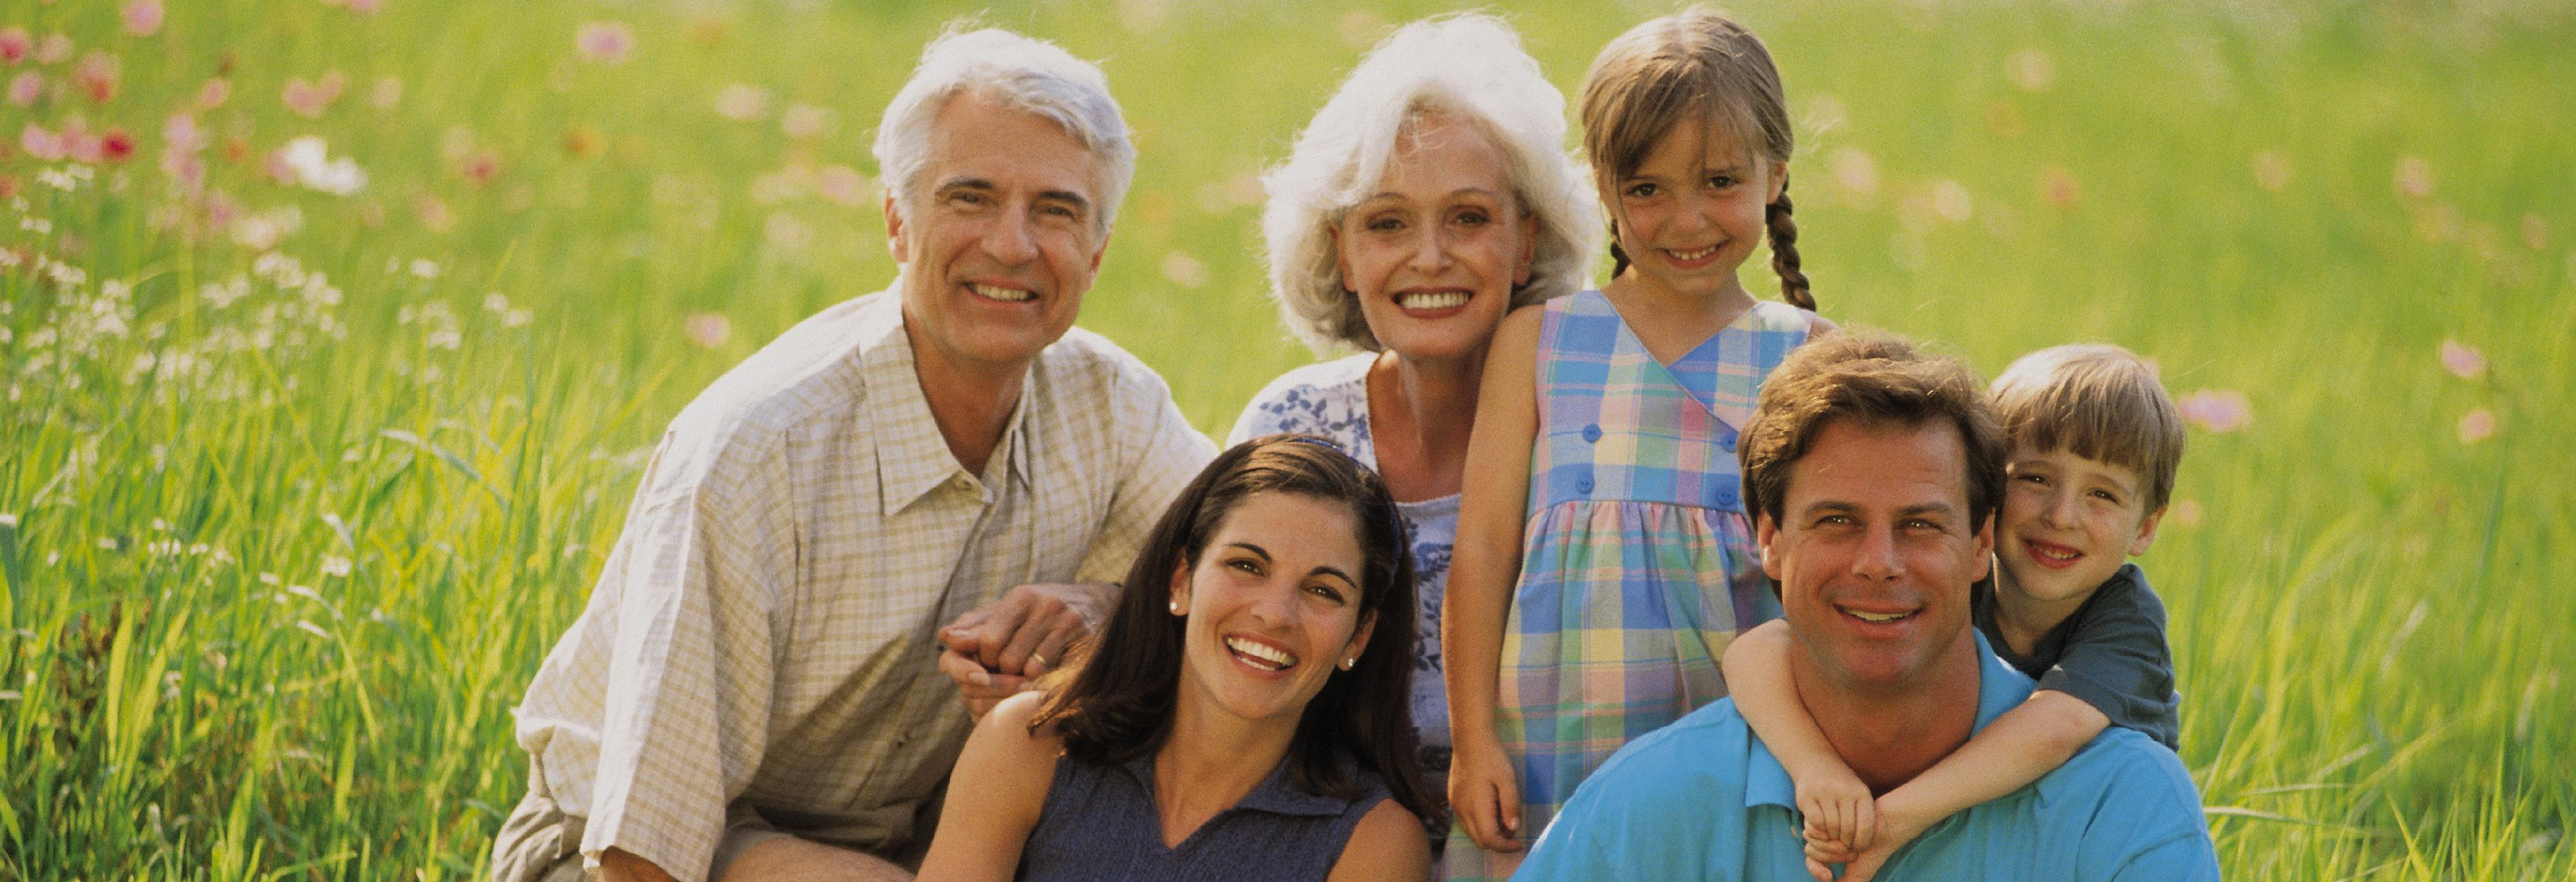 anderson funeral home franklin ohio family end of life planning